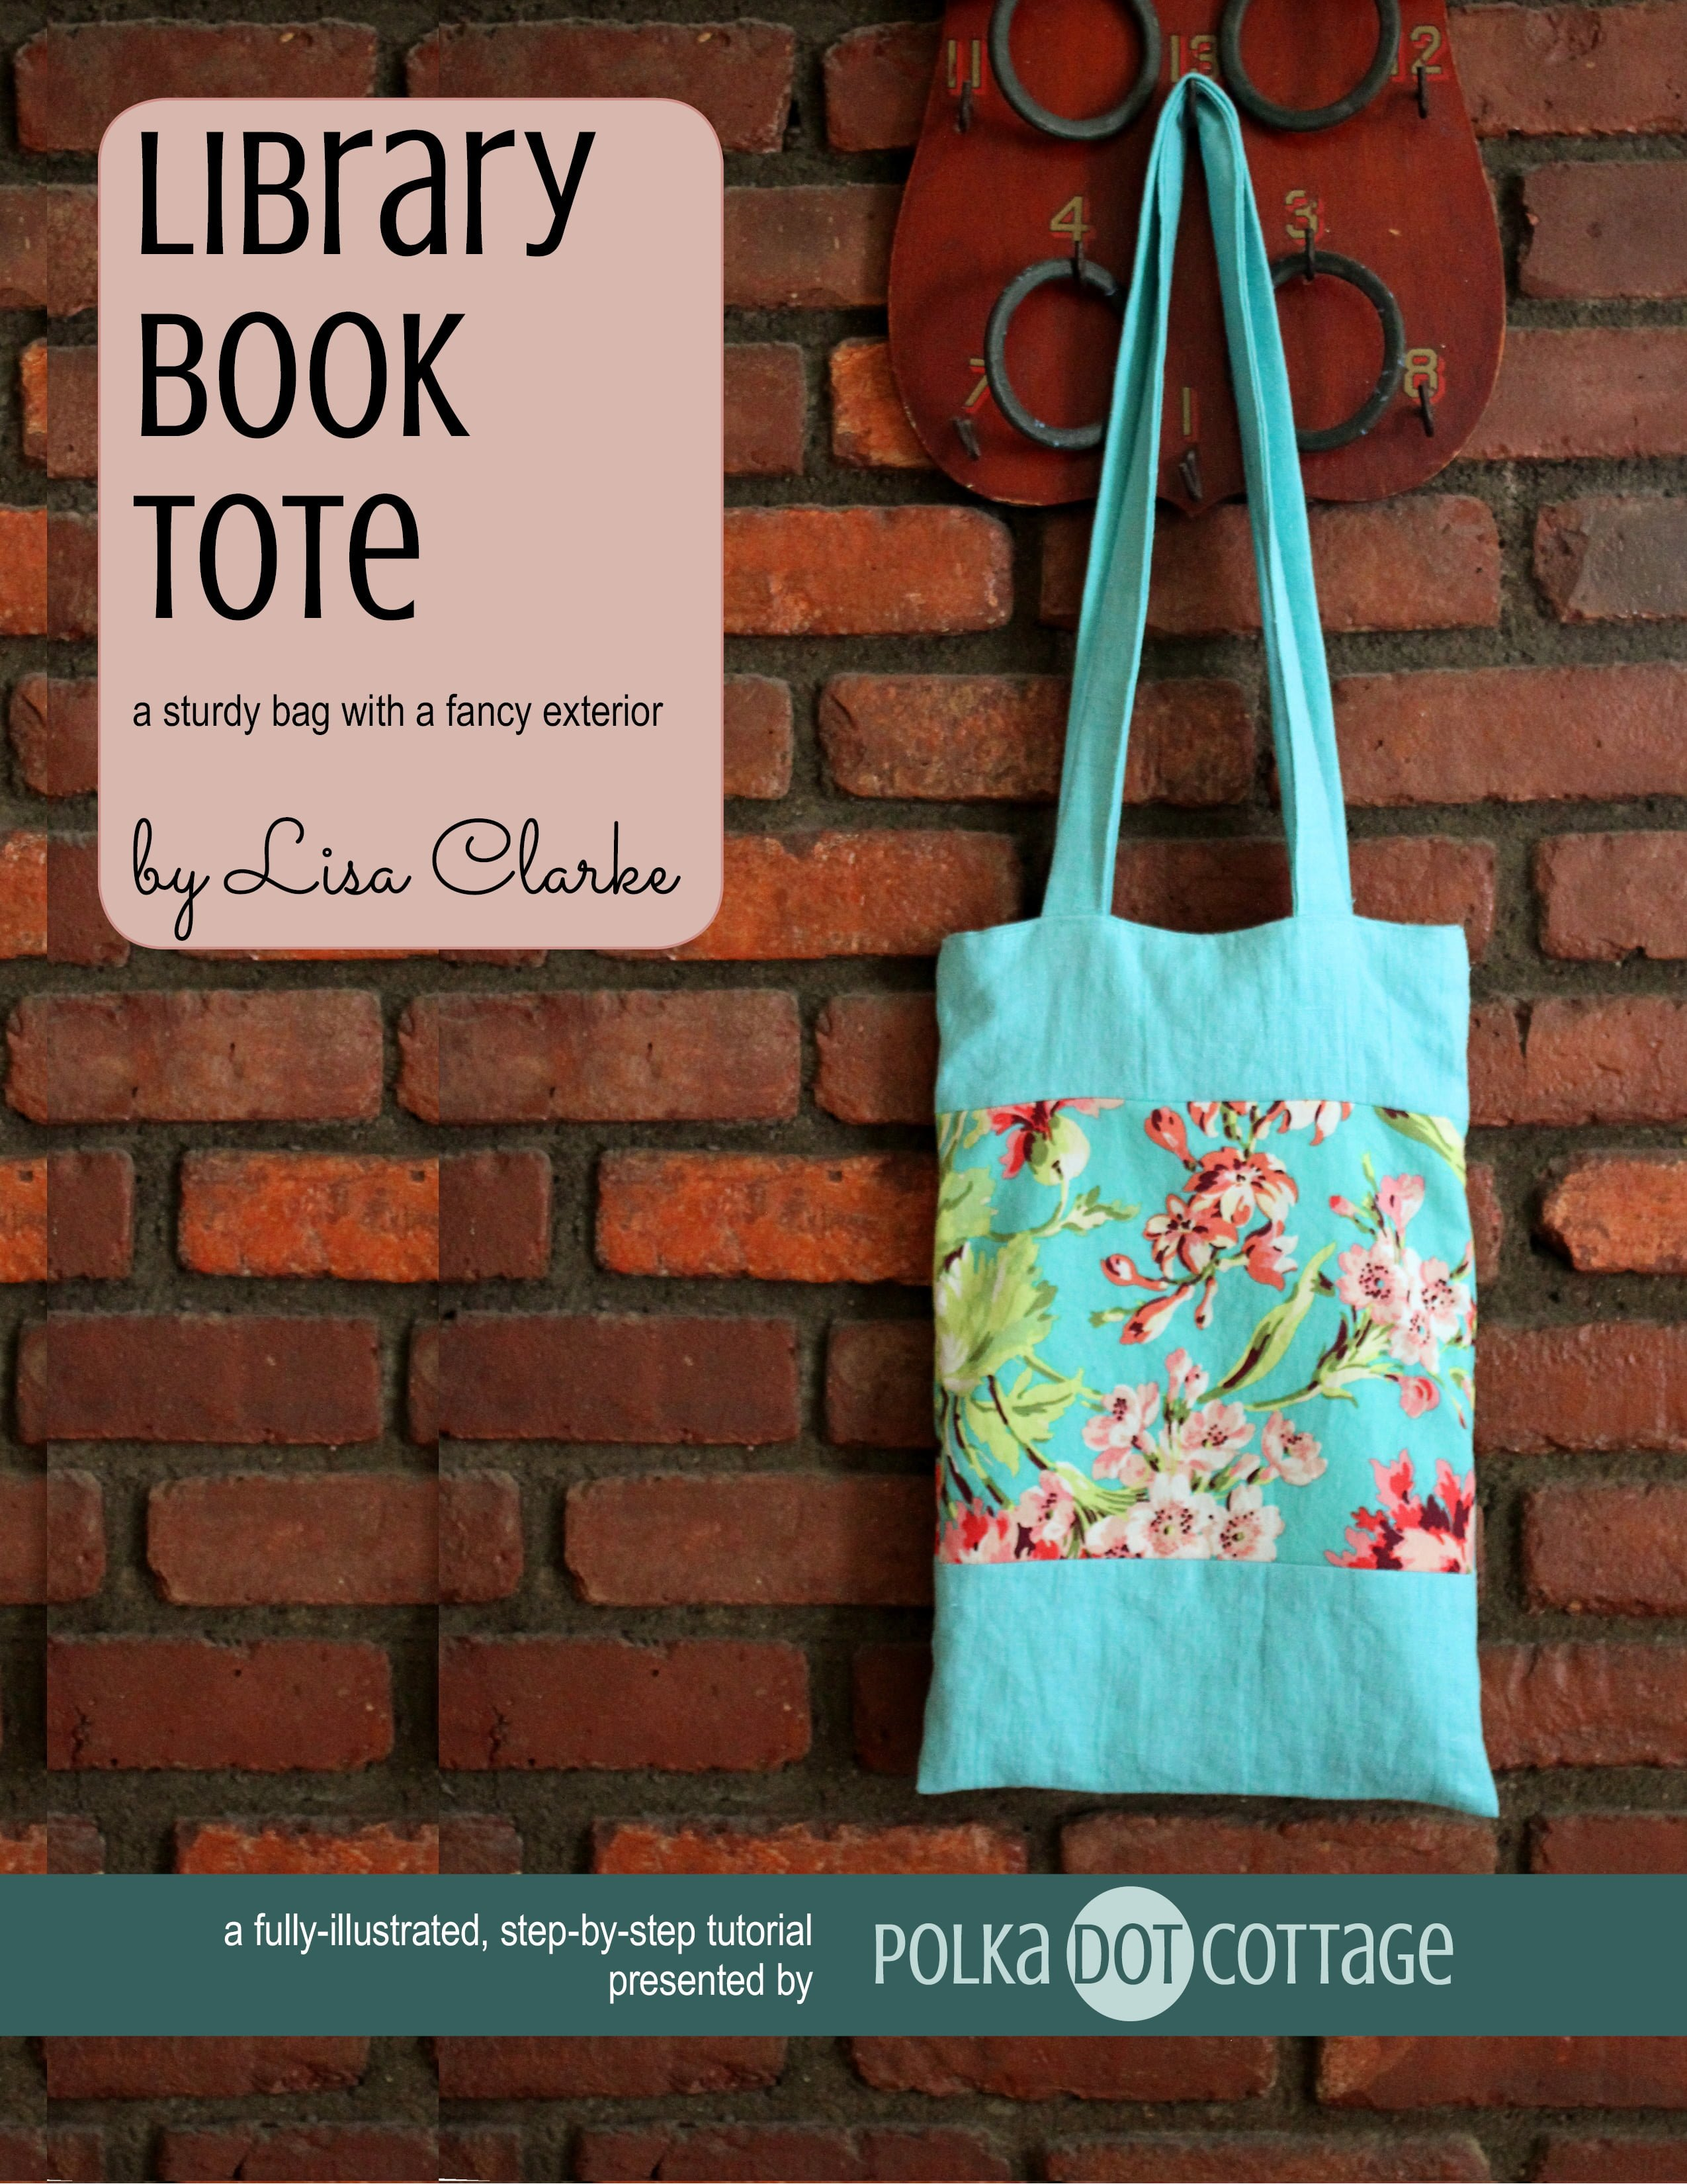 Library Book Tote, an eBook tutorial from Polka Dot Cottage